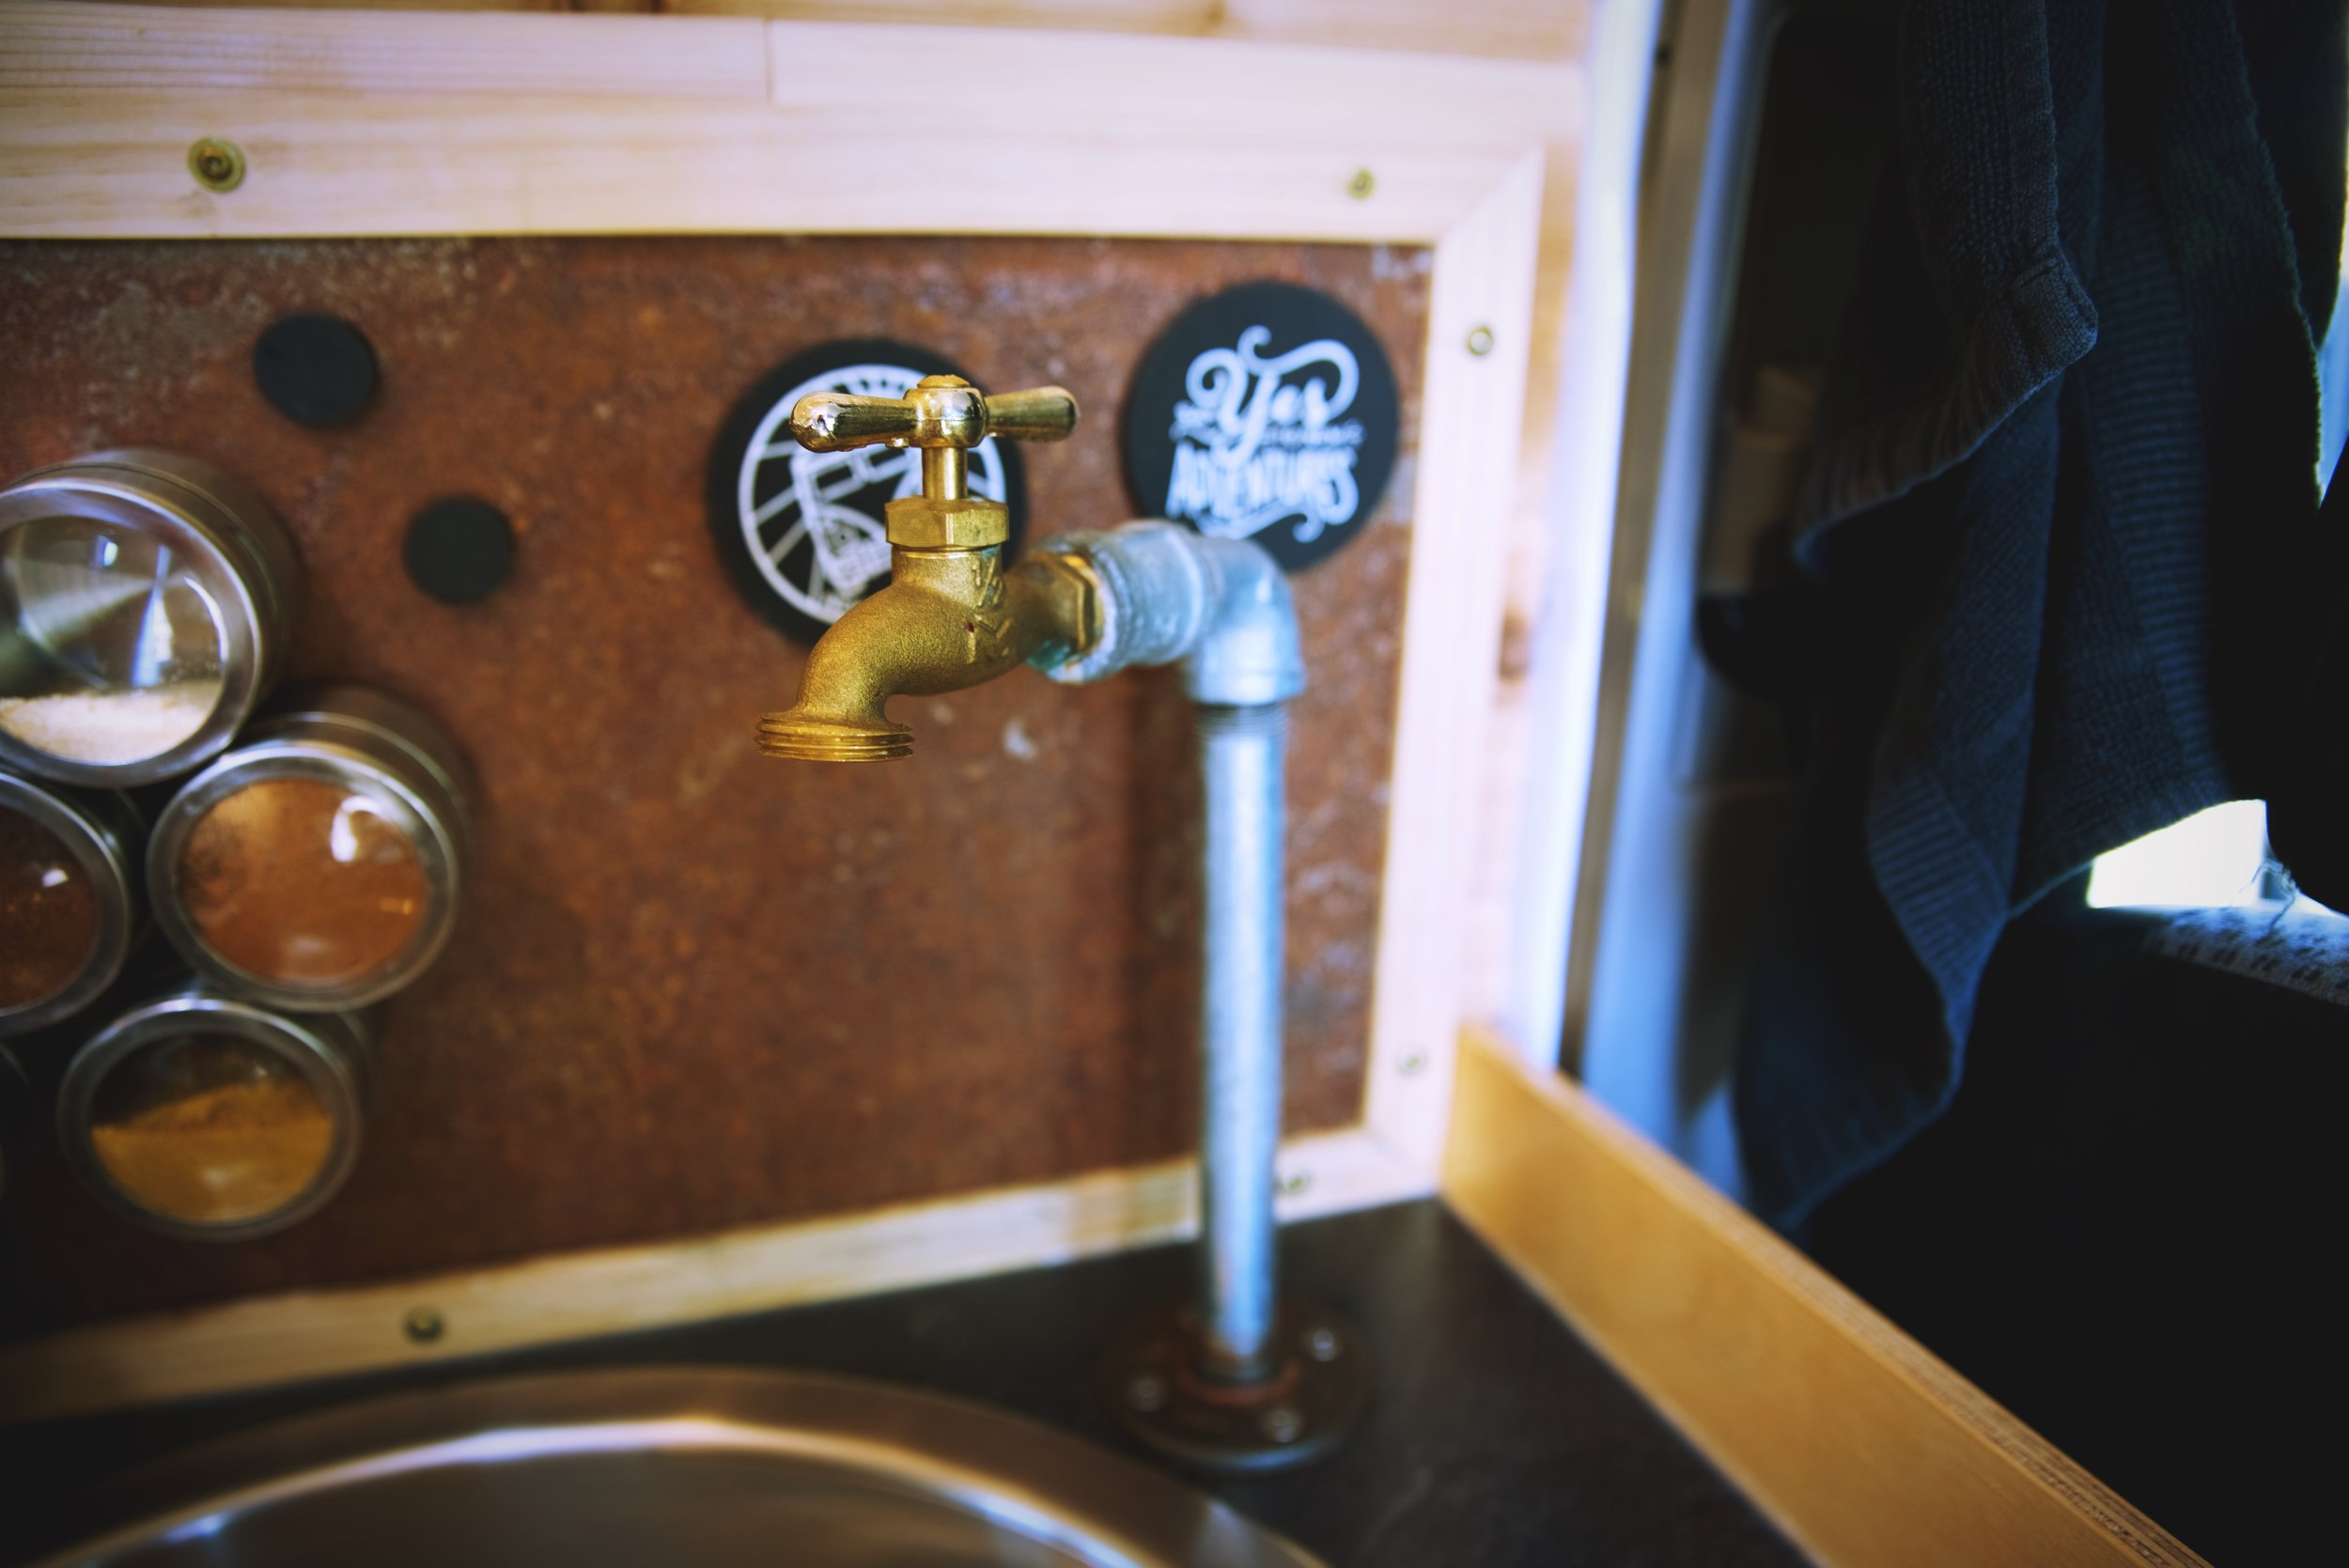 The finished faucet was both affordable and it matches the rustic look of our van's interior.